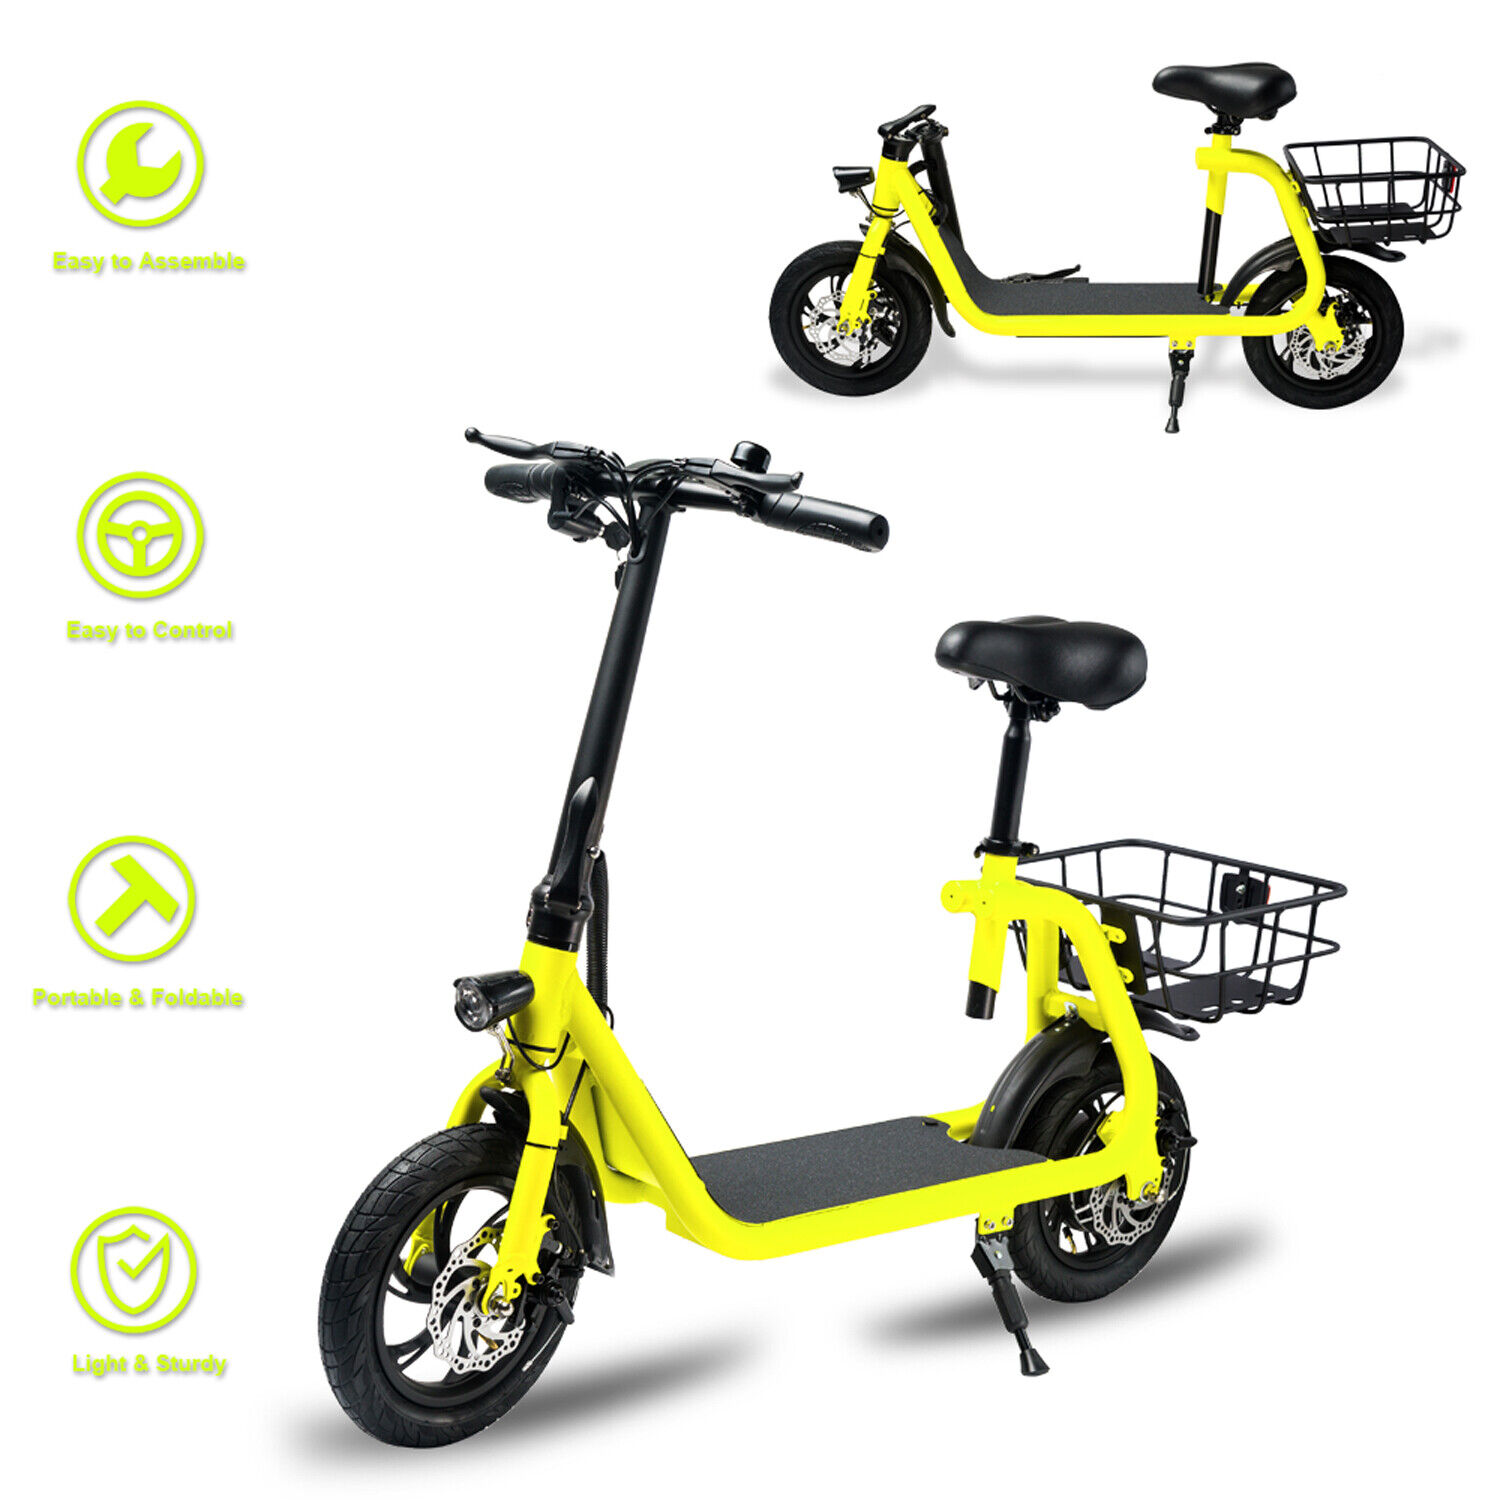 Electric Bike Portable Bicycle 350W Motor Lithium Battery EBike Outdoors (New - 9399 USD)